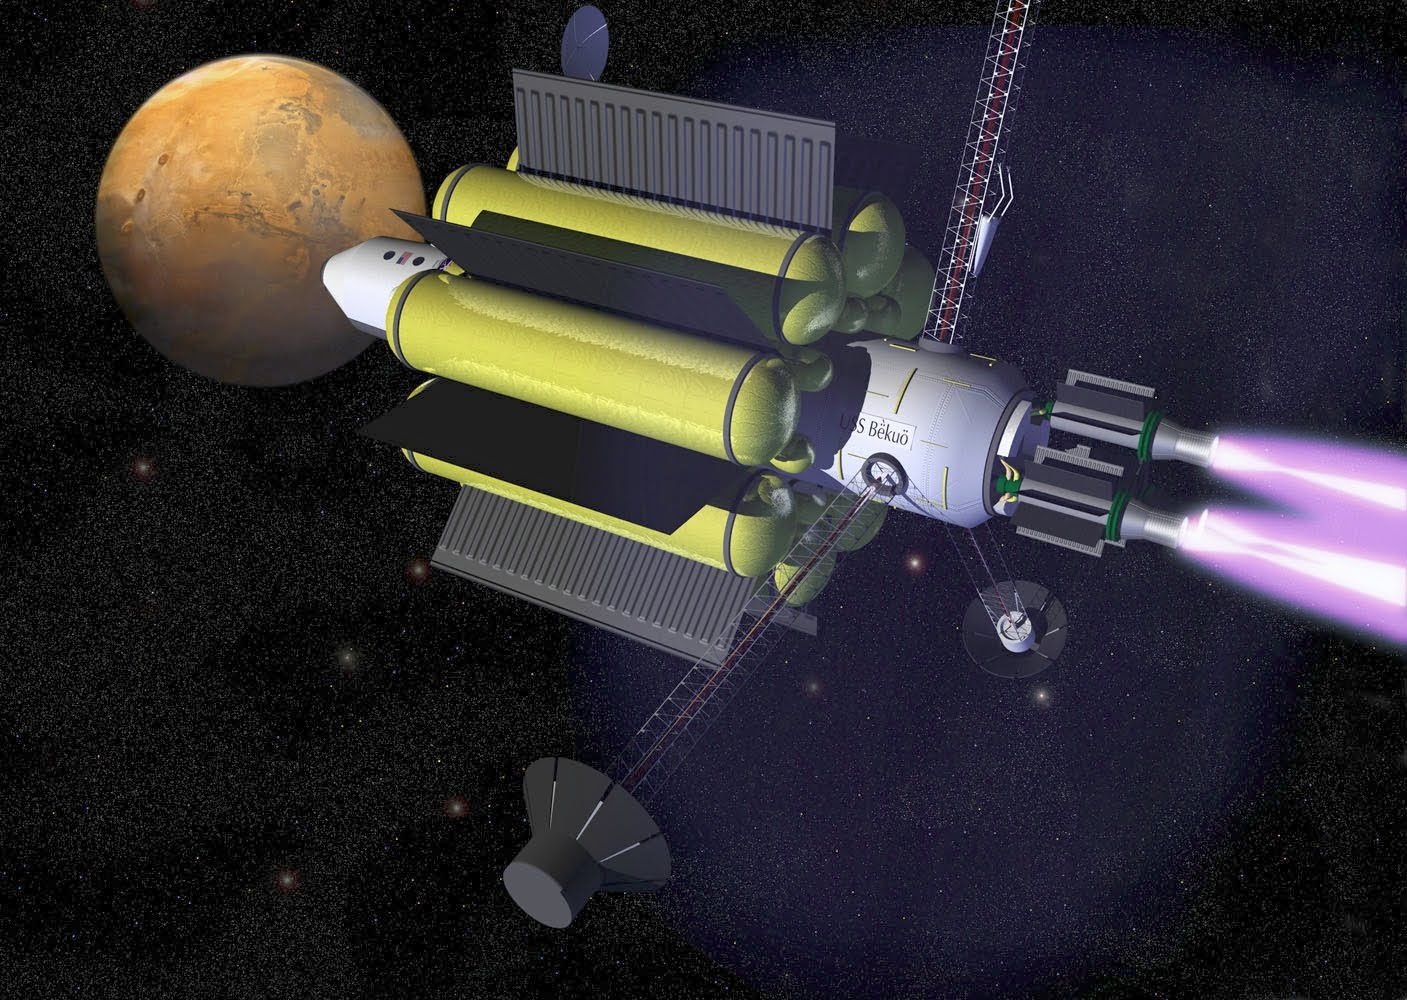 NASA's New VASIMR Plasma Engine Could Reach Mars in 39 days